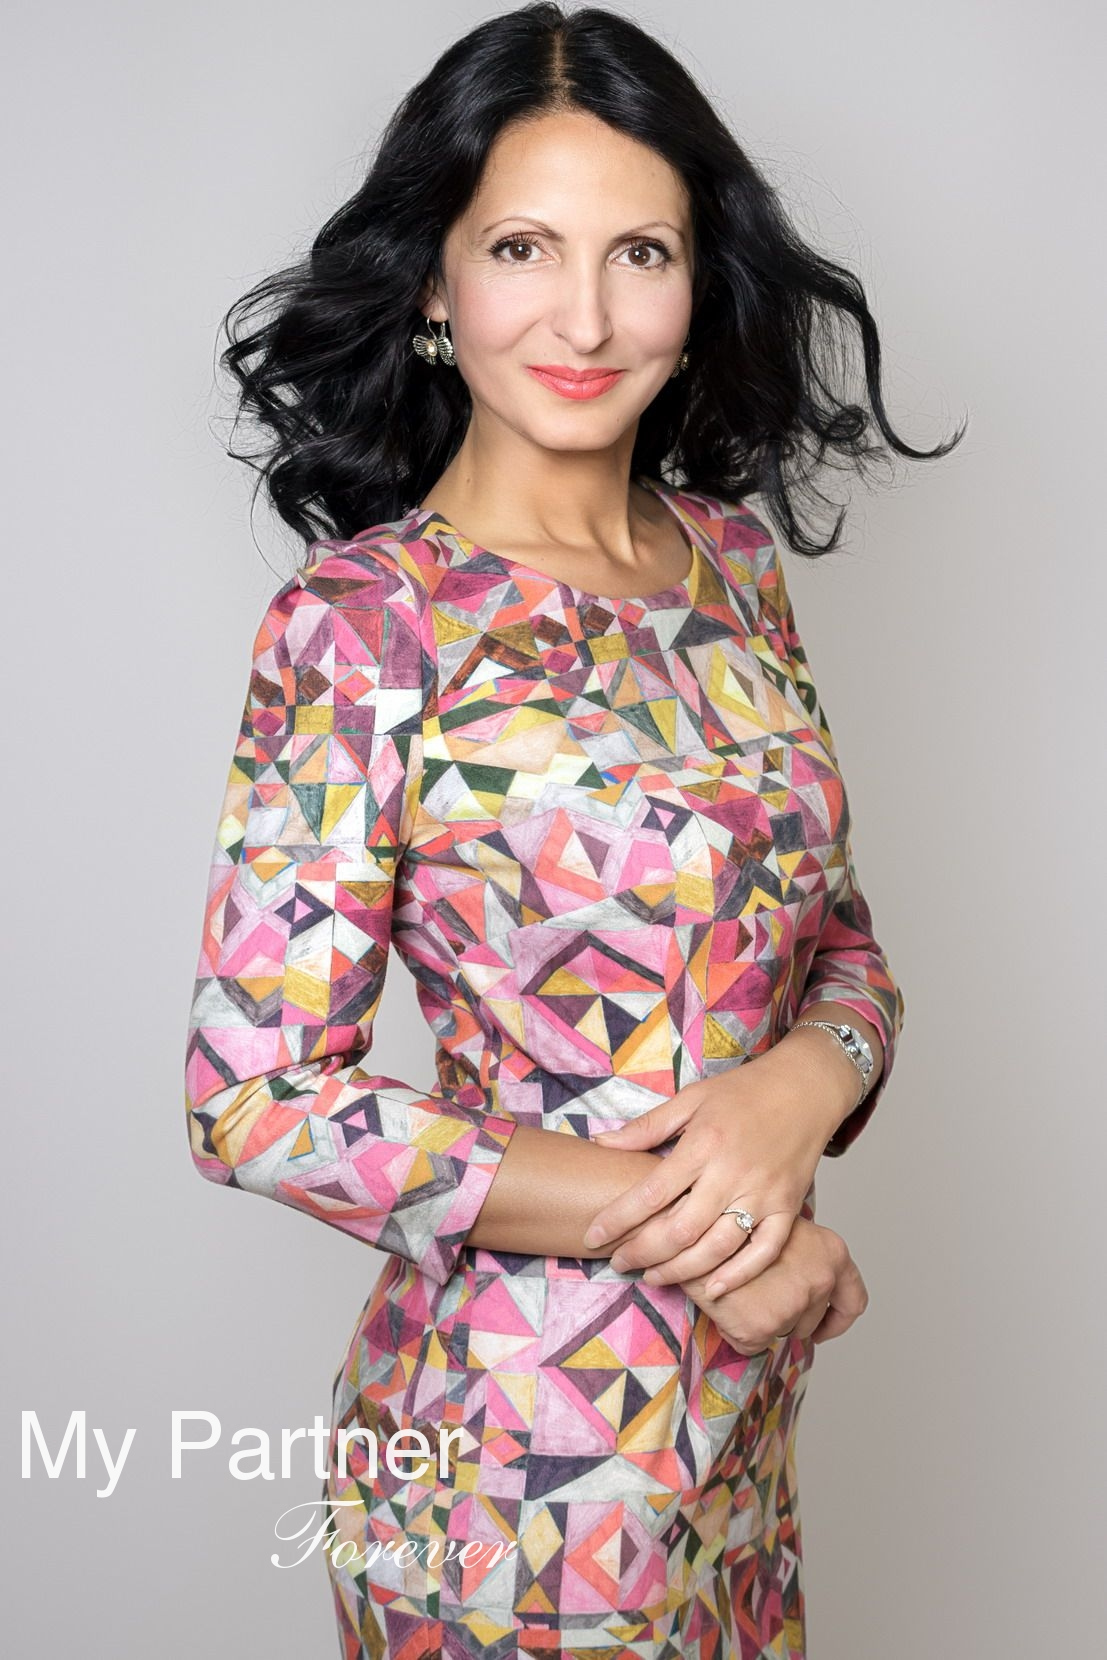 Pretty Woman from Belarus - Nataliya from Grodno, Belarus